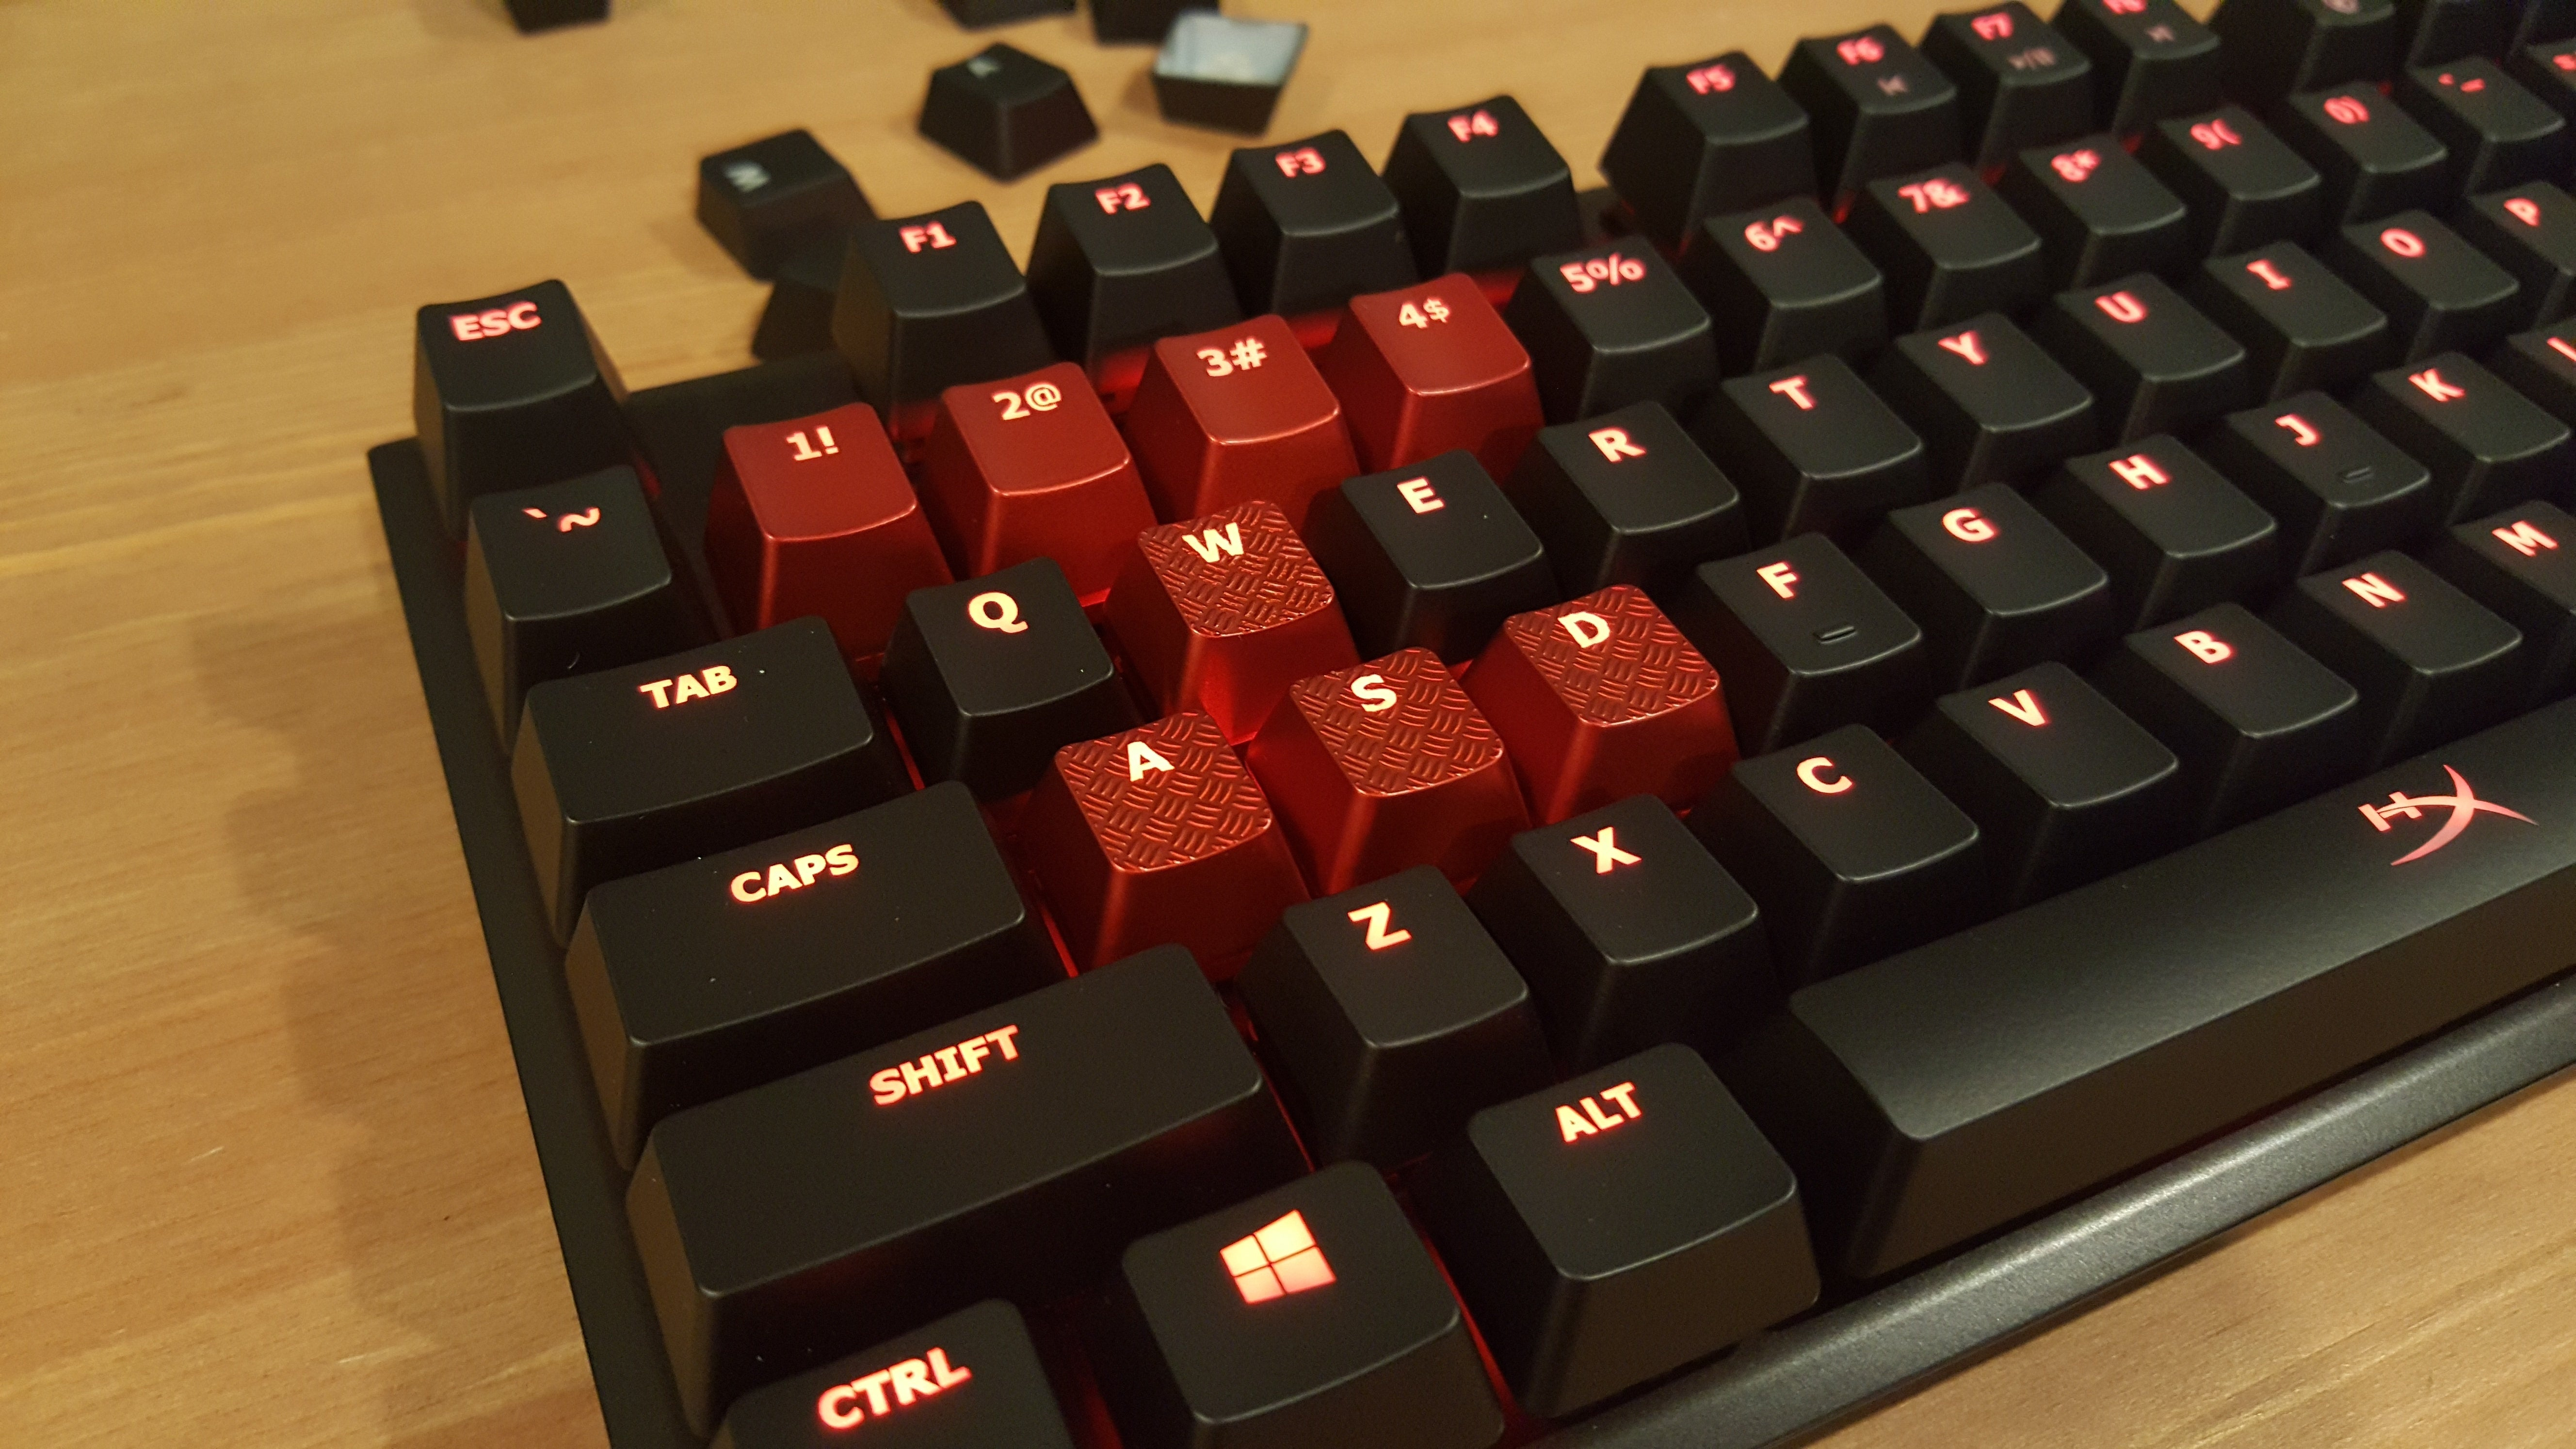 44d032a6411 Best gaming keyboards 2019: Reviews and buying advice | PCWorld